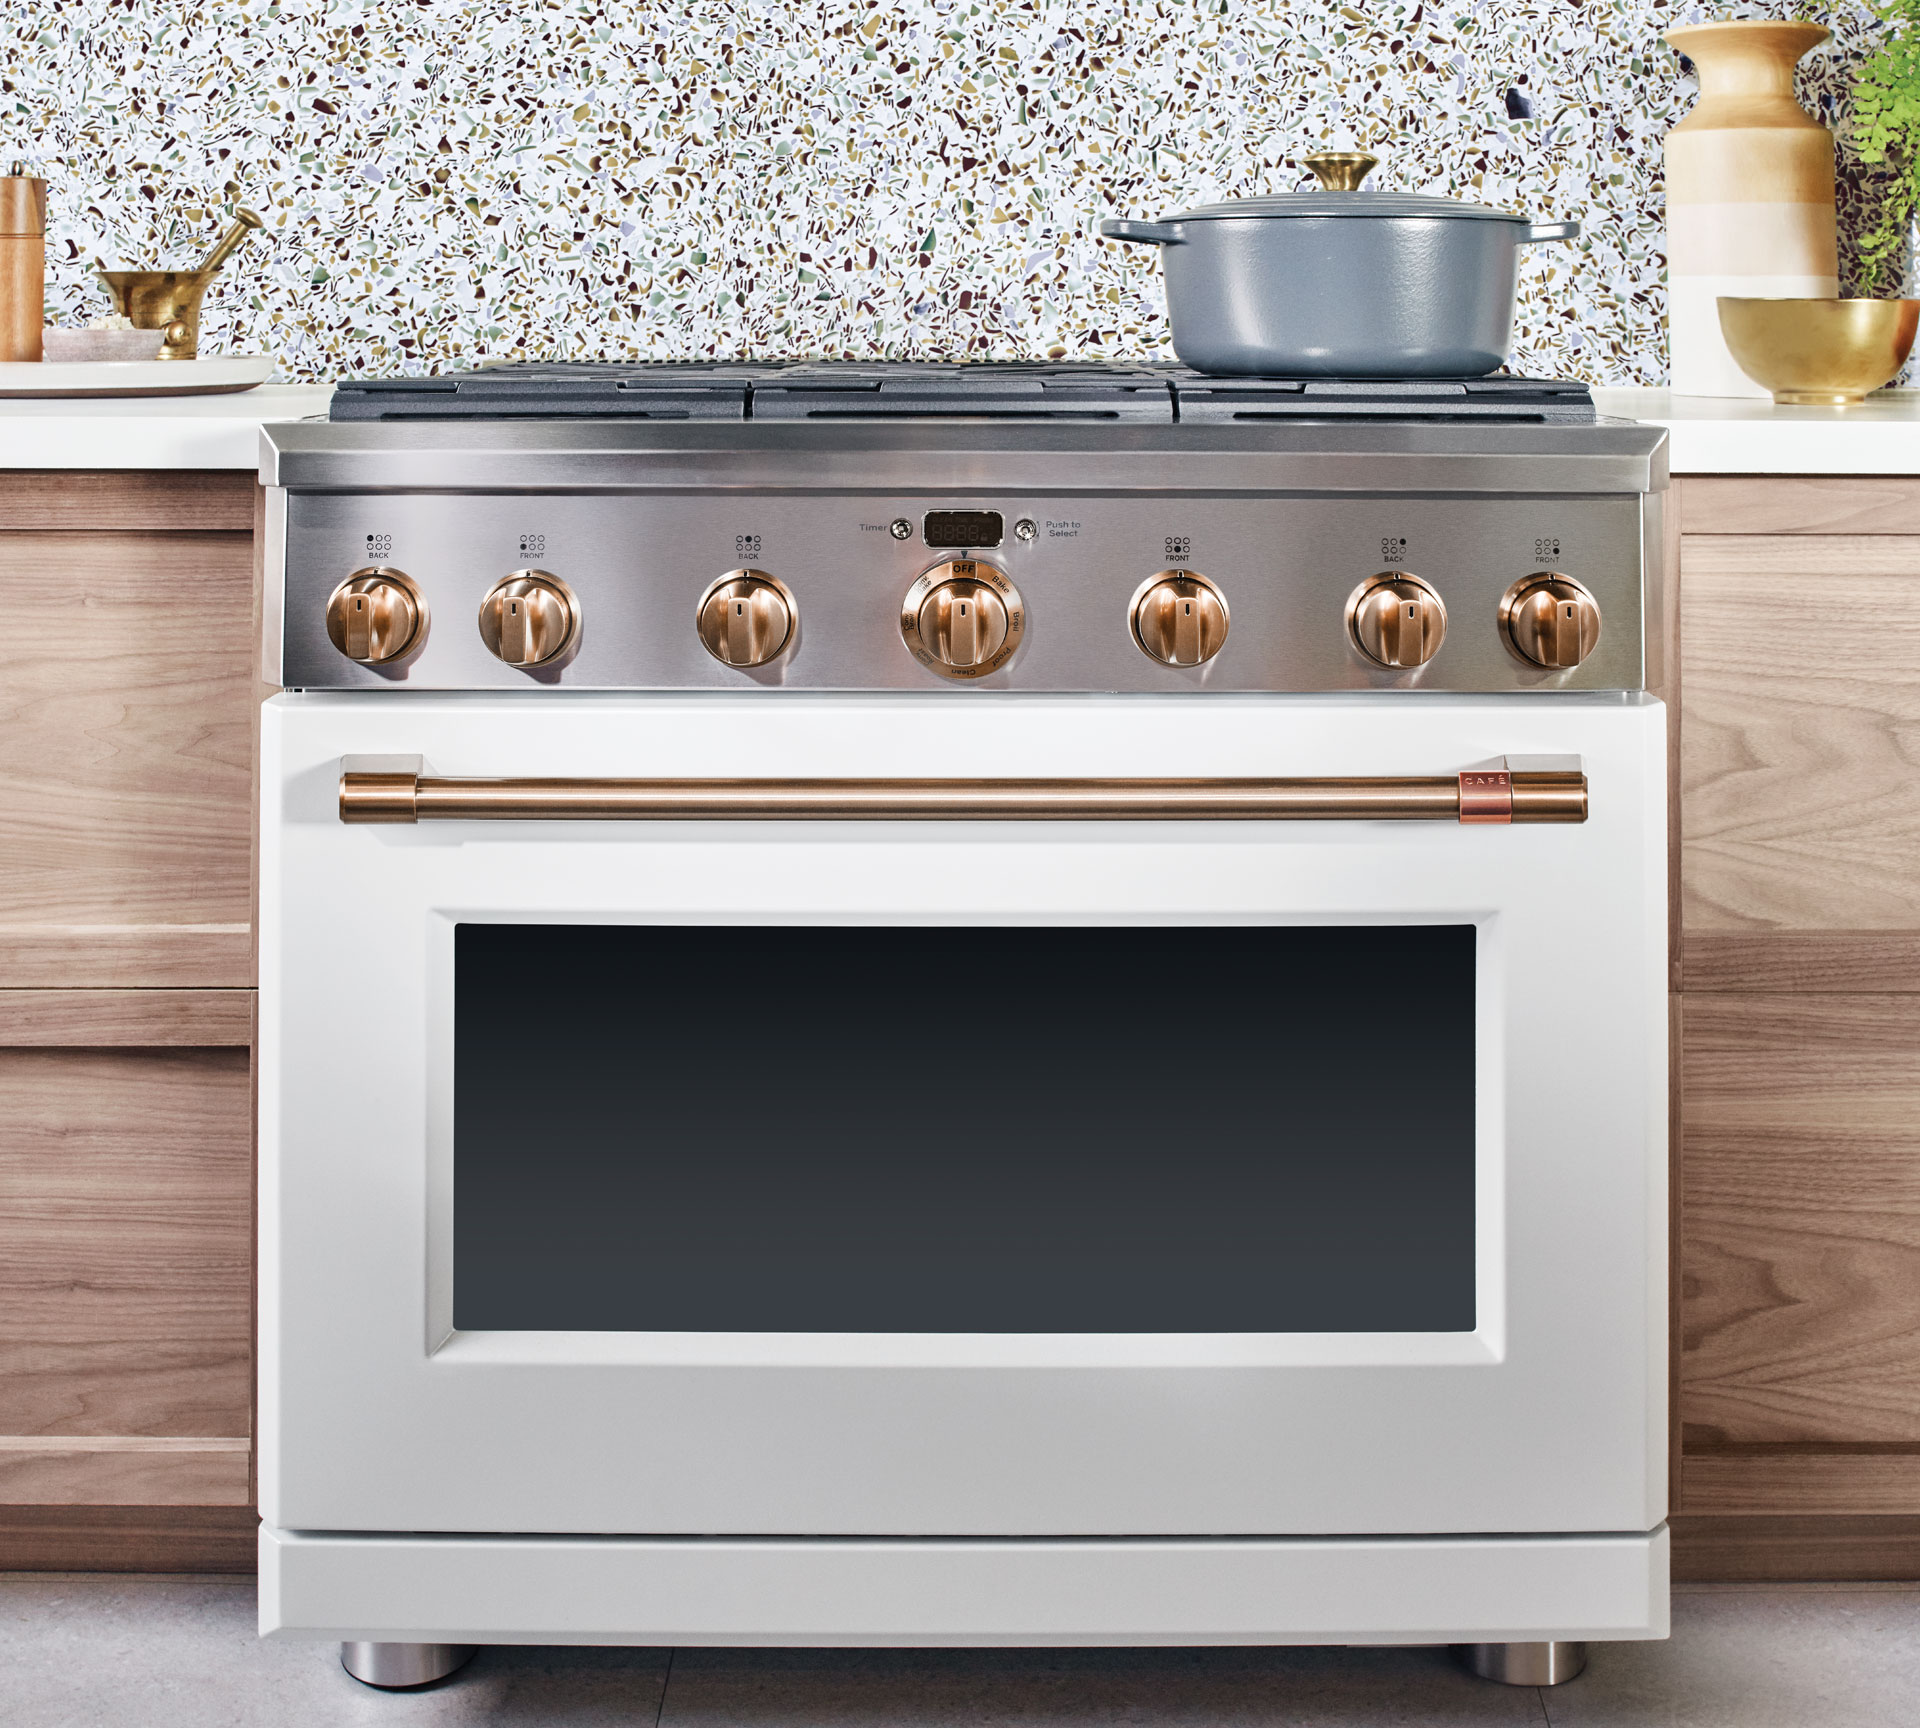 Matte white (or black) appliances from   Cafe Appliance by GE  , available at   Best Buy